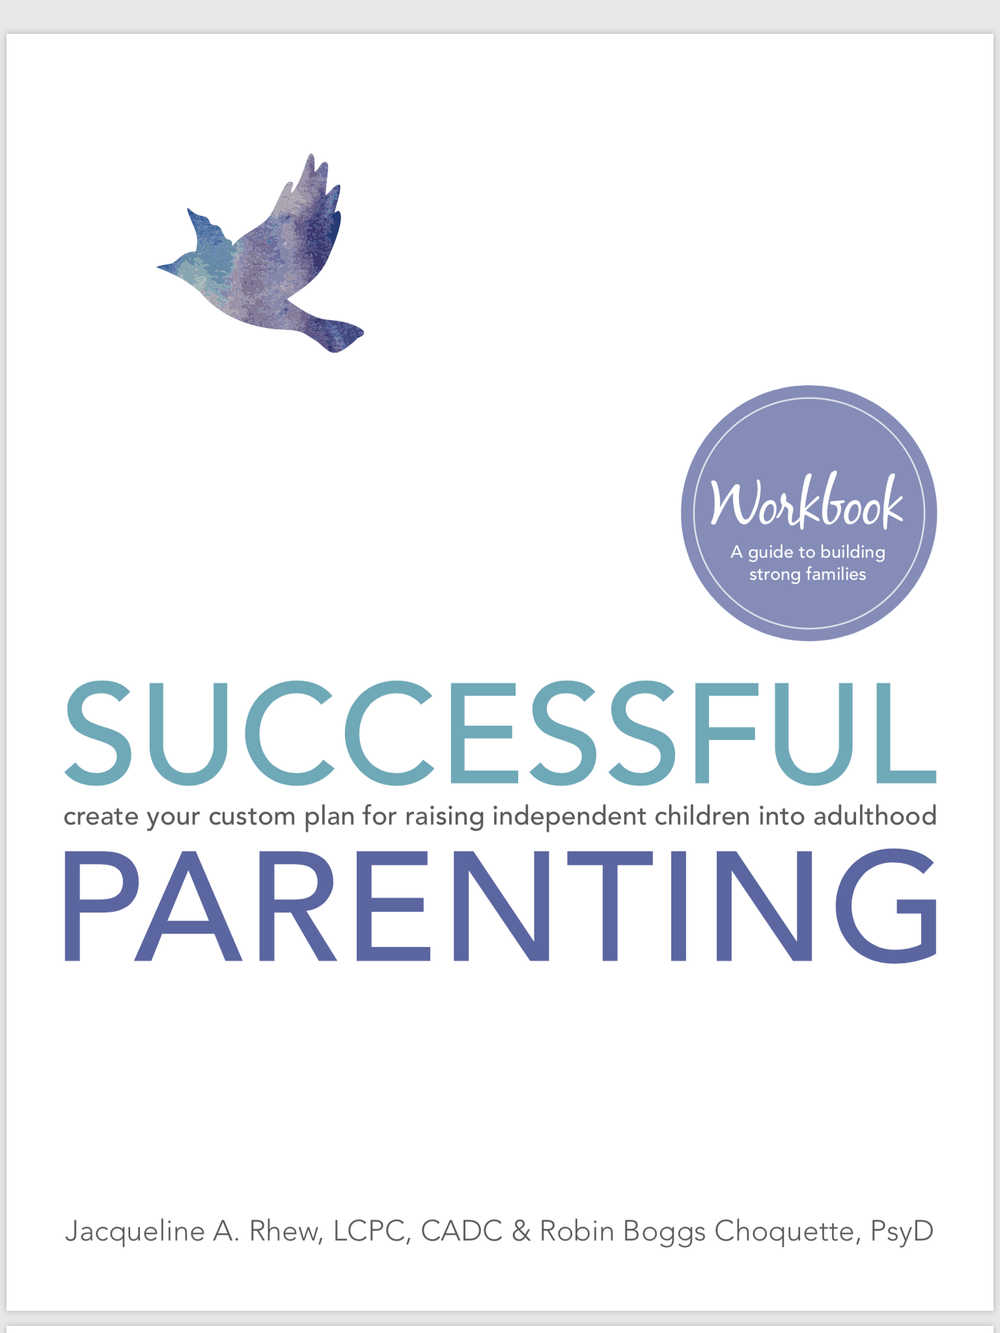 - First in a series of workbooks designed to train and encourage parents, educators and coaches on strategies that work with children and teens through focus on self-reflection, communication, values and skill building.